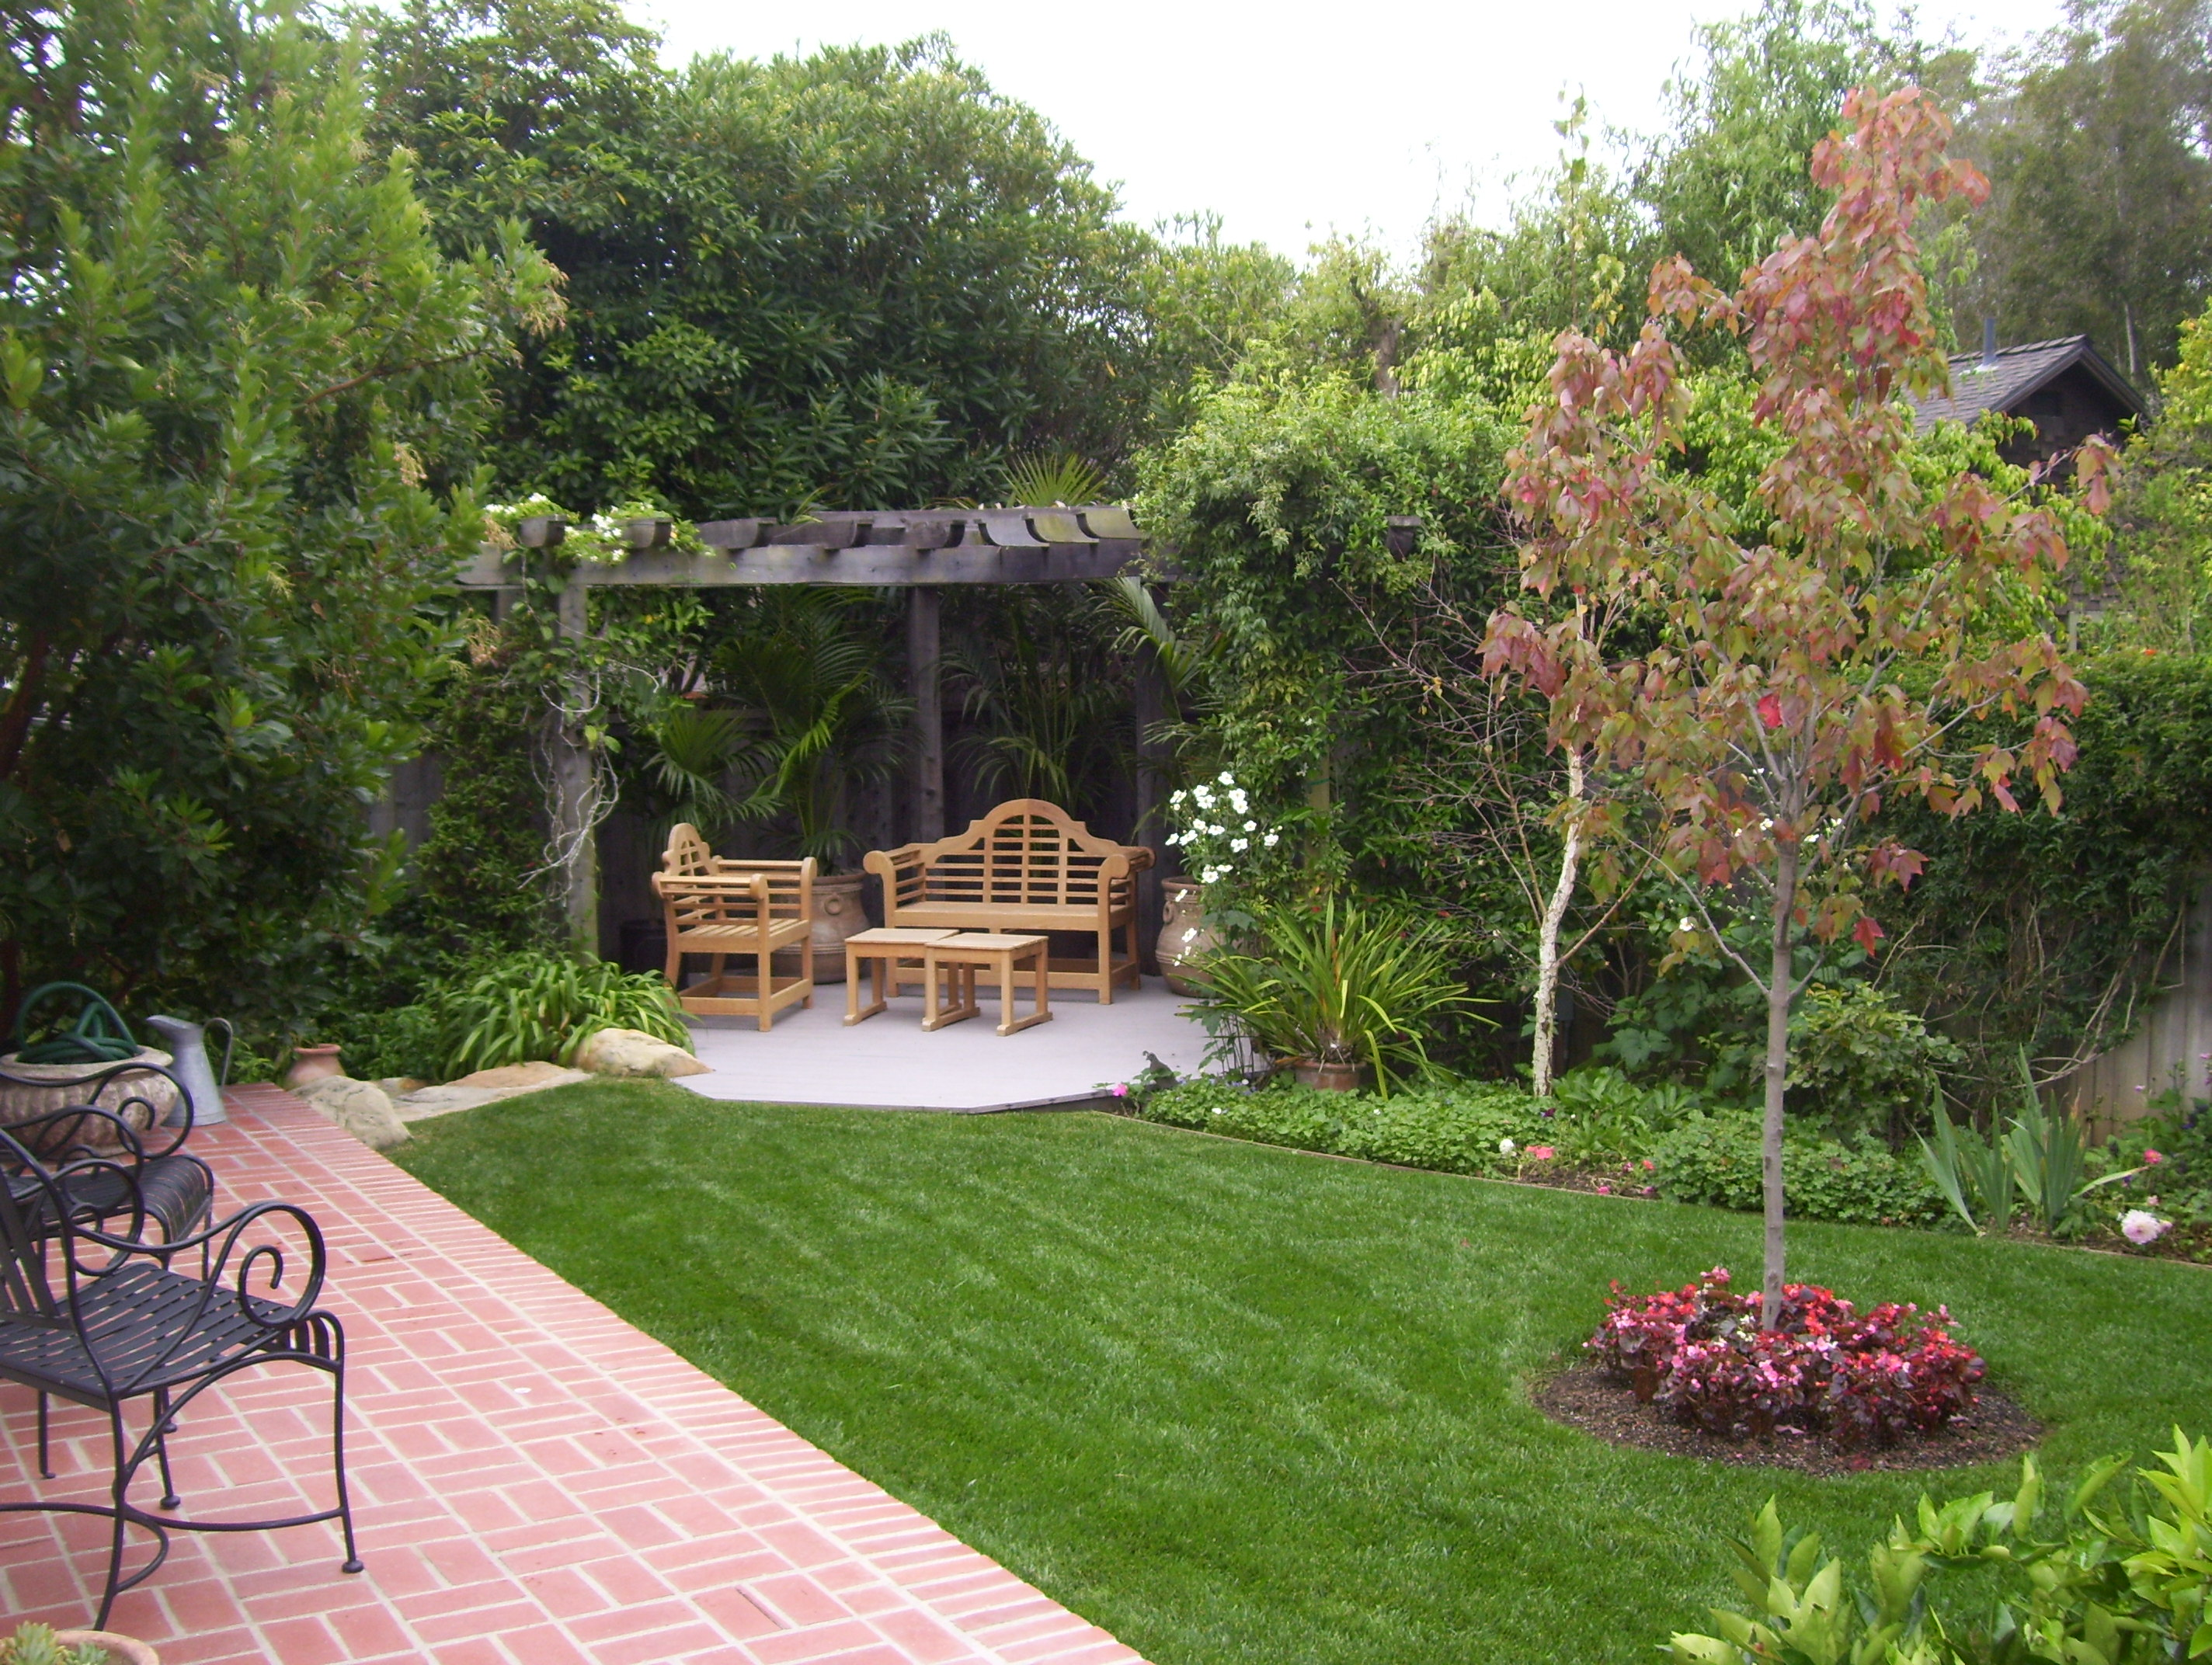 Santa barbara lawn and garden maintenenace landscape for Backyard garden designs